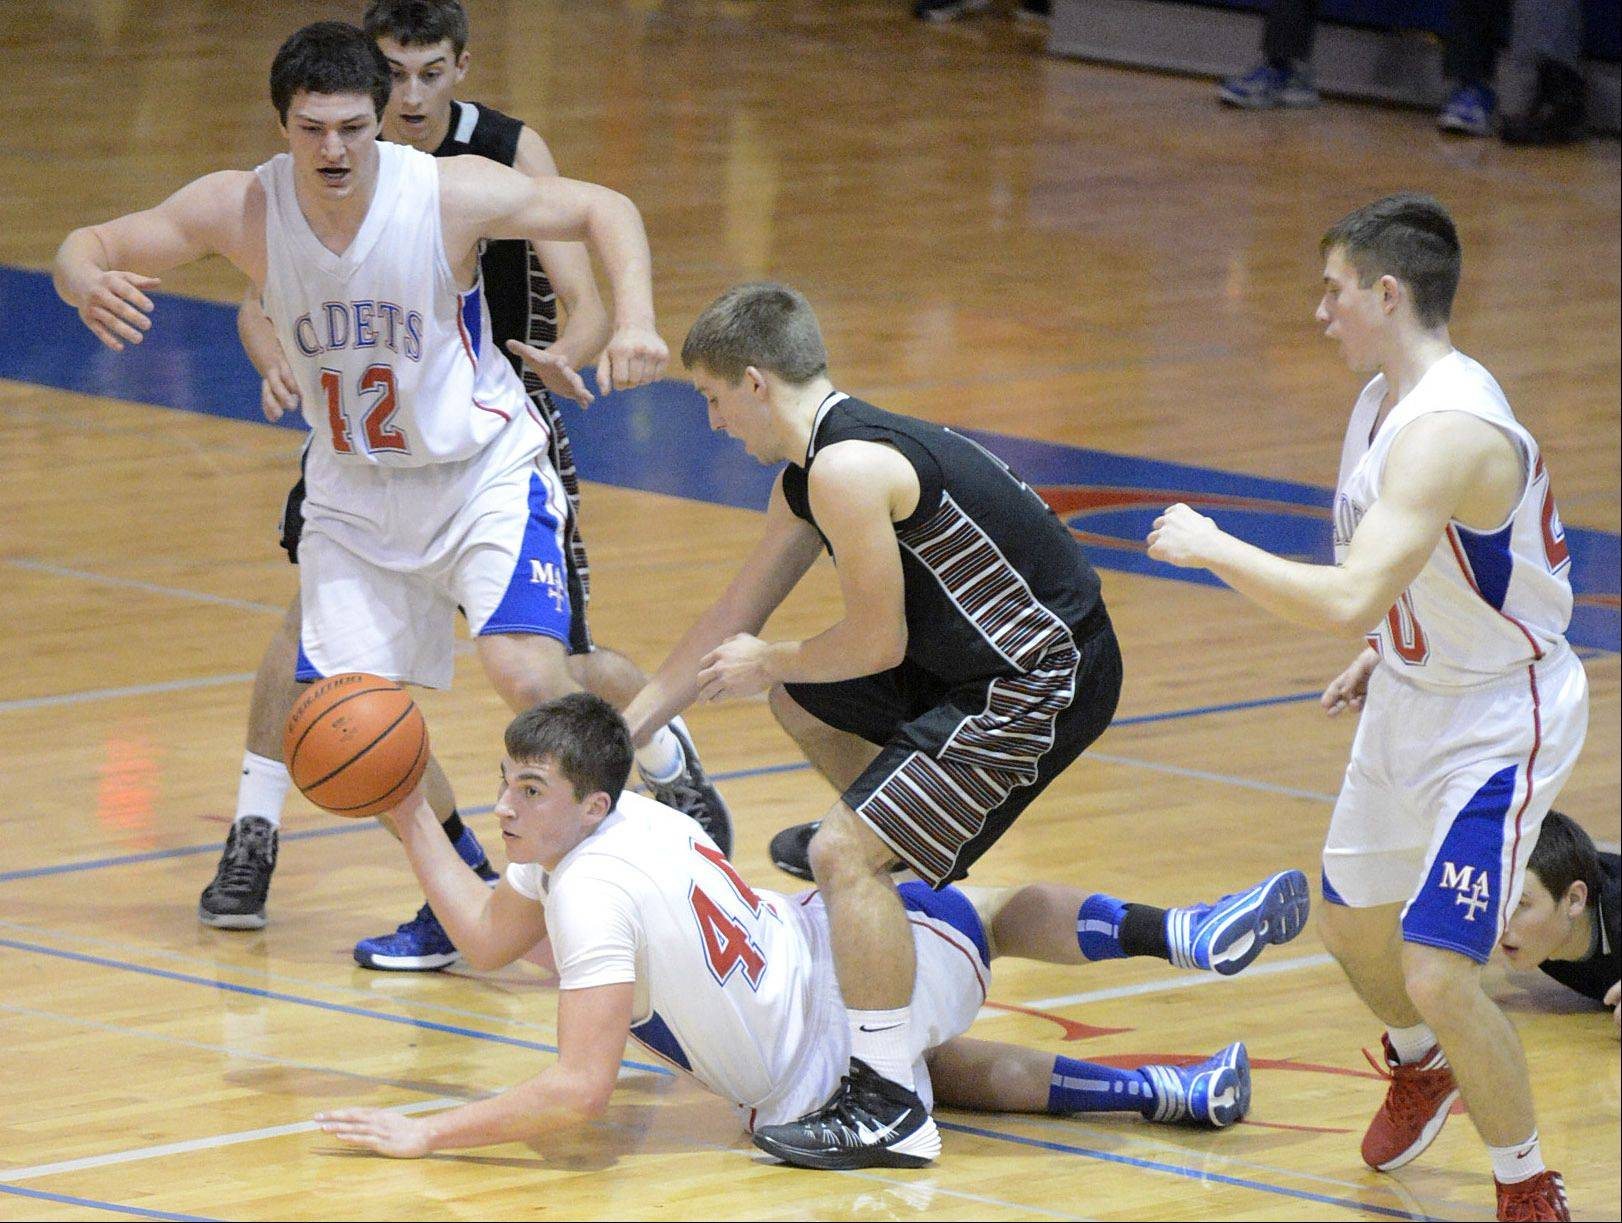 Marmion Academy's Danny Bicknell manages a pass while falling ahead of Kaneland's Drew David in the second quarter.